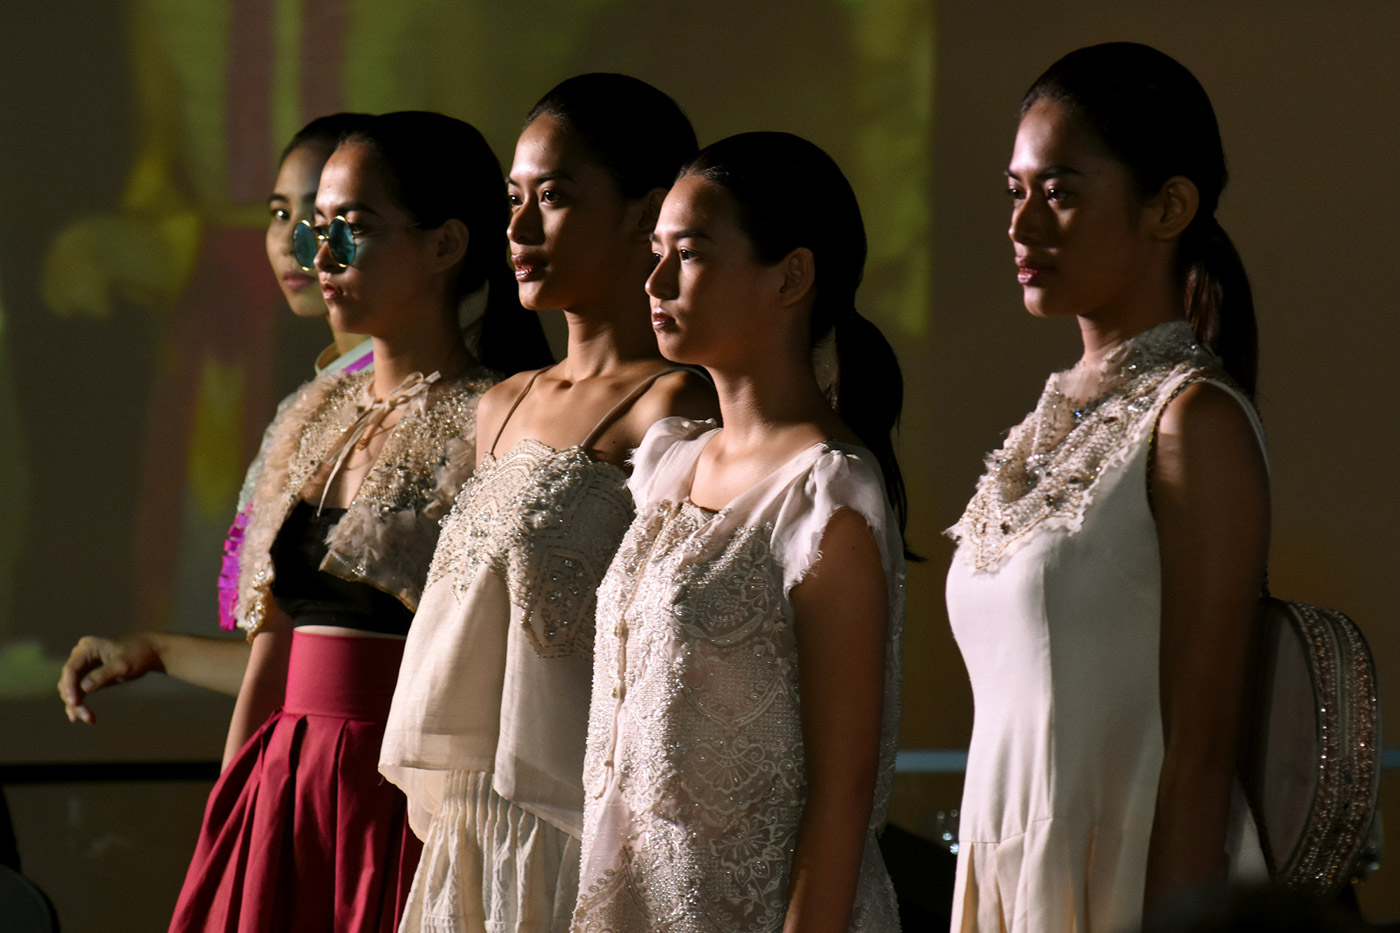 TRUE FILIPINO FASHION. Internationally-reknowned Filipino brand 'Aloysius Worldwide' strutted their designs which proudly incorporate local indeginous weaves. Photo by Angie de Silva/Rappler